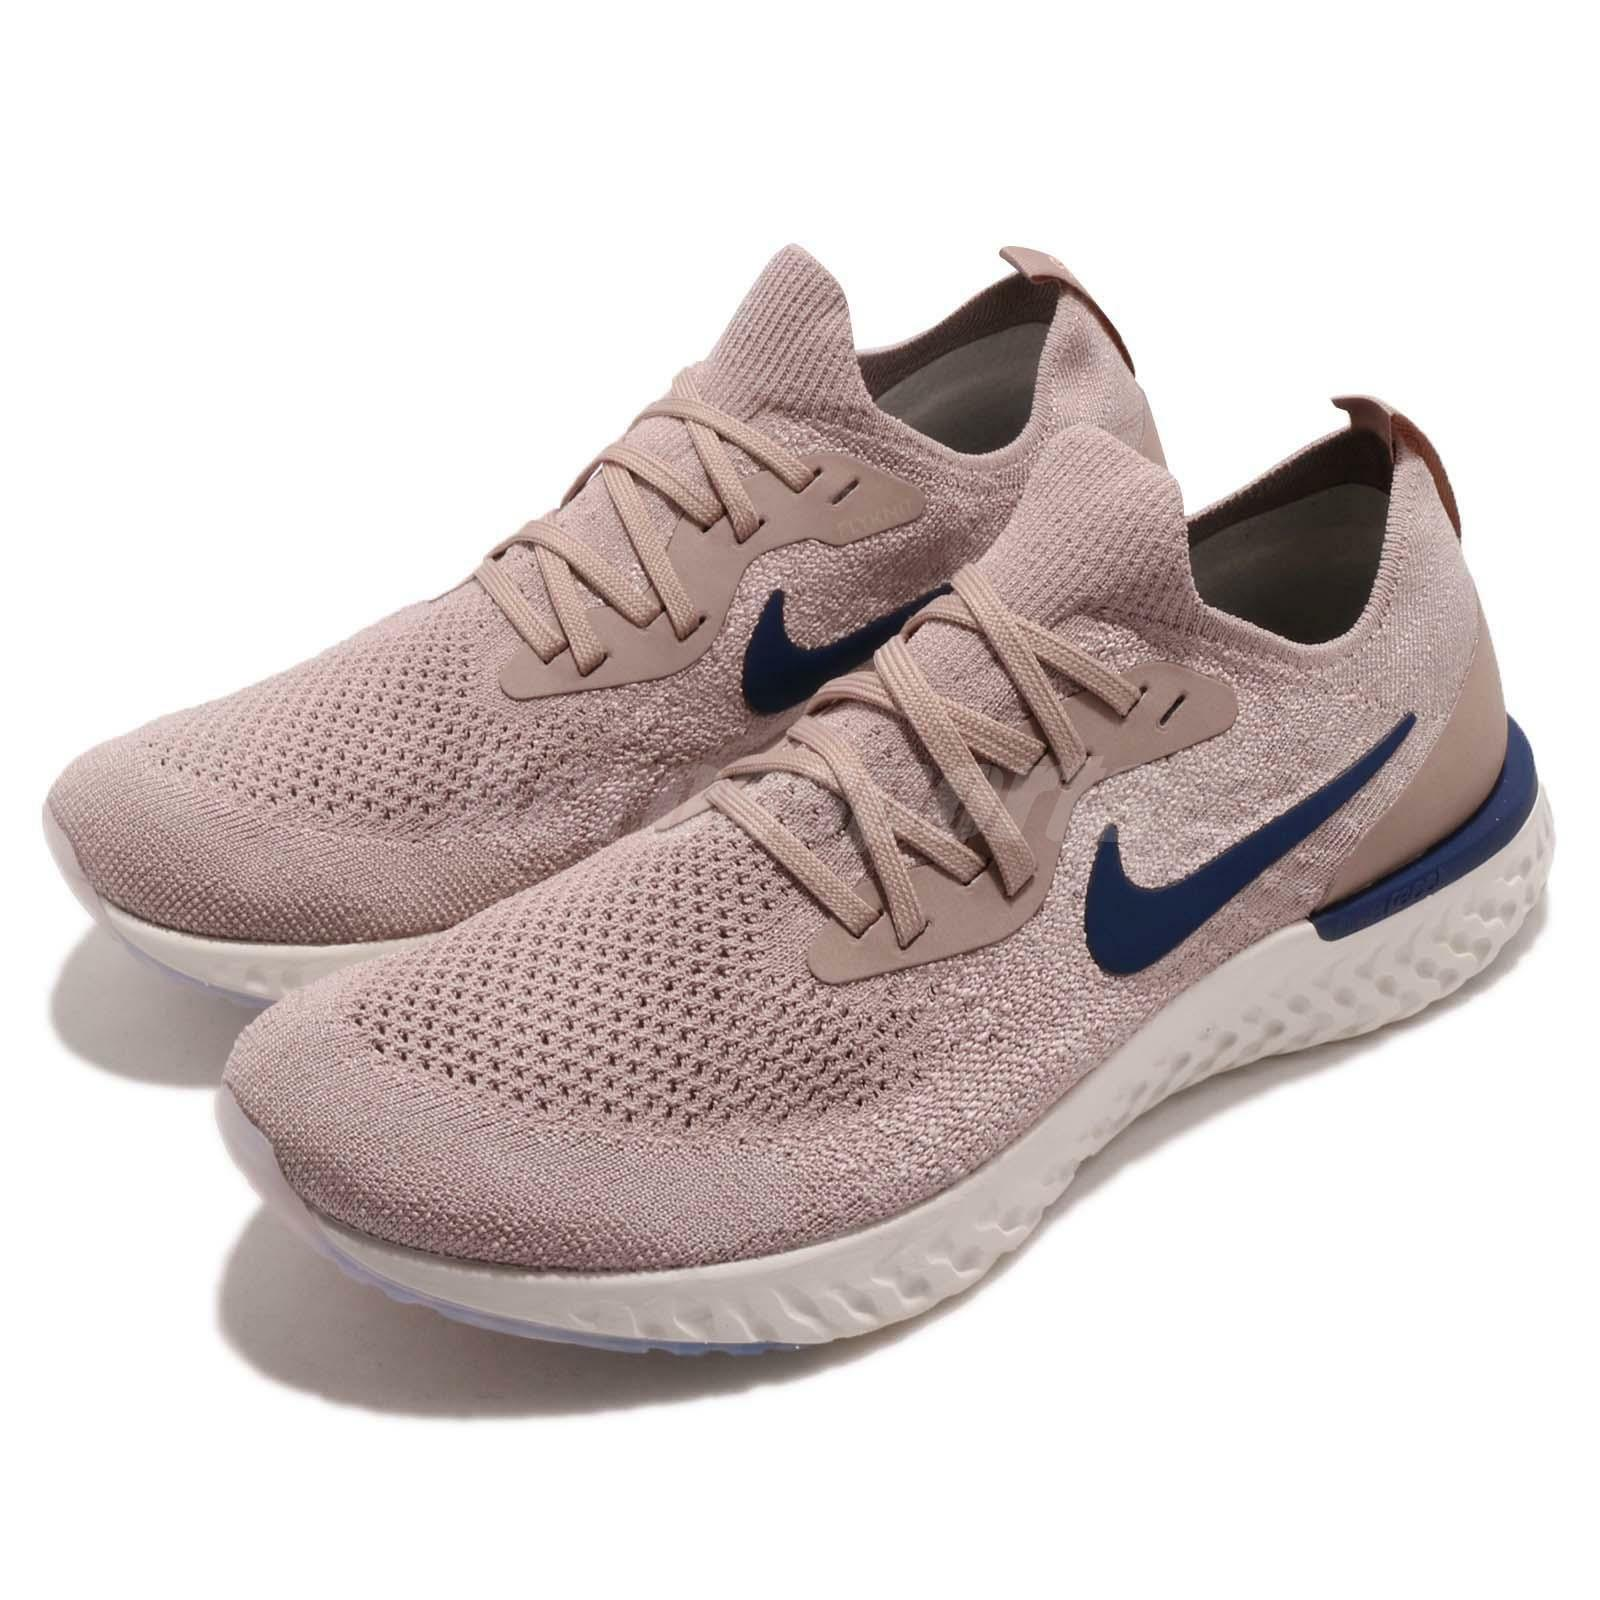 Nike Epic React Flyknit Hombre Diffused Zapatos Taupe Navy Hombre Flyknit Running 24a10f